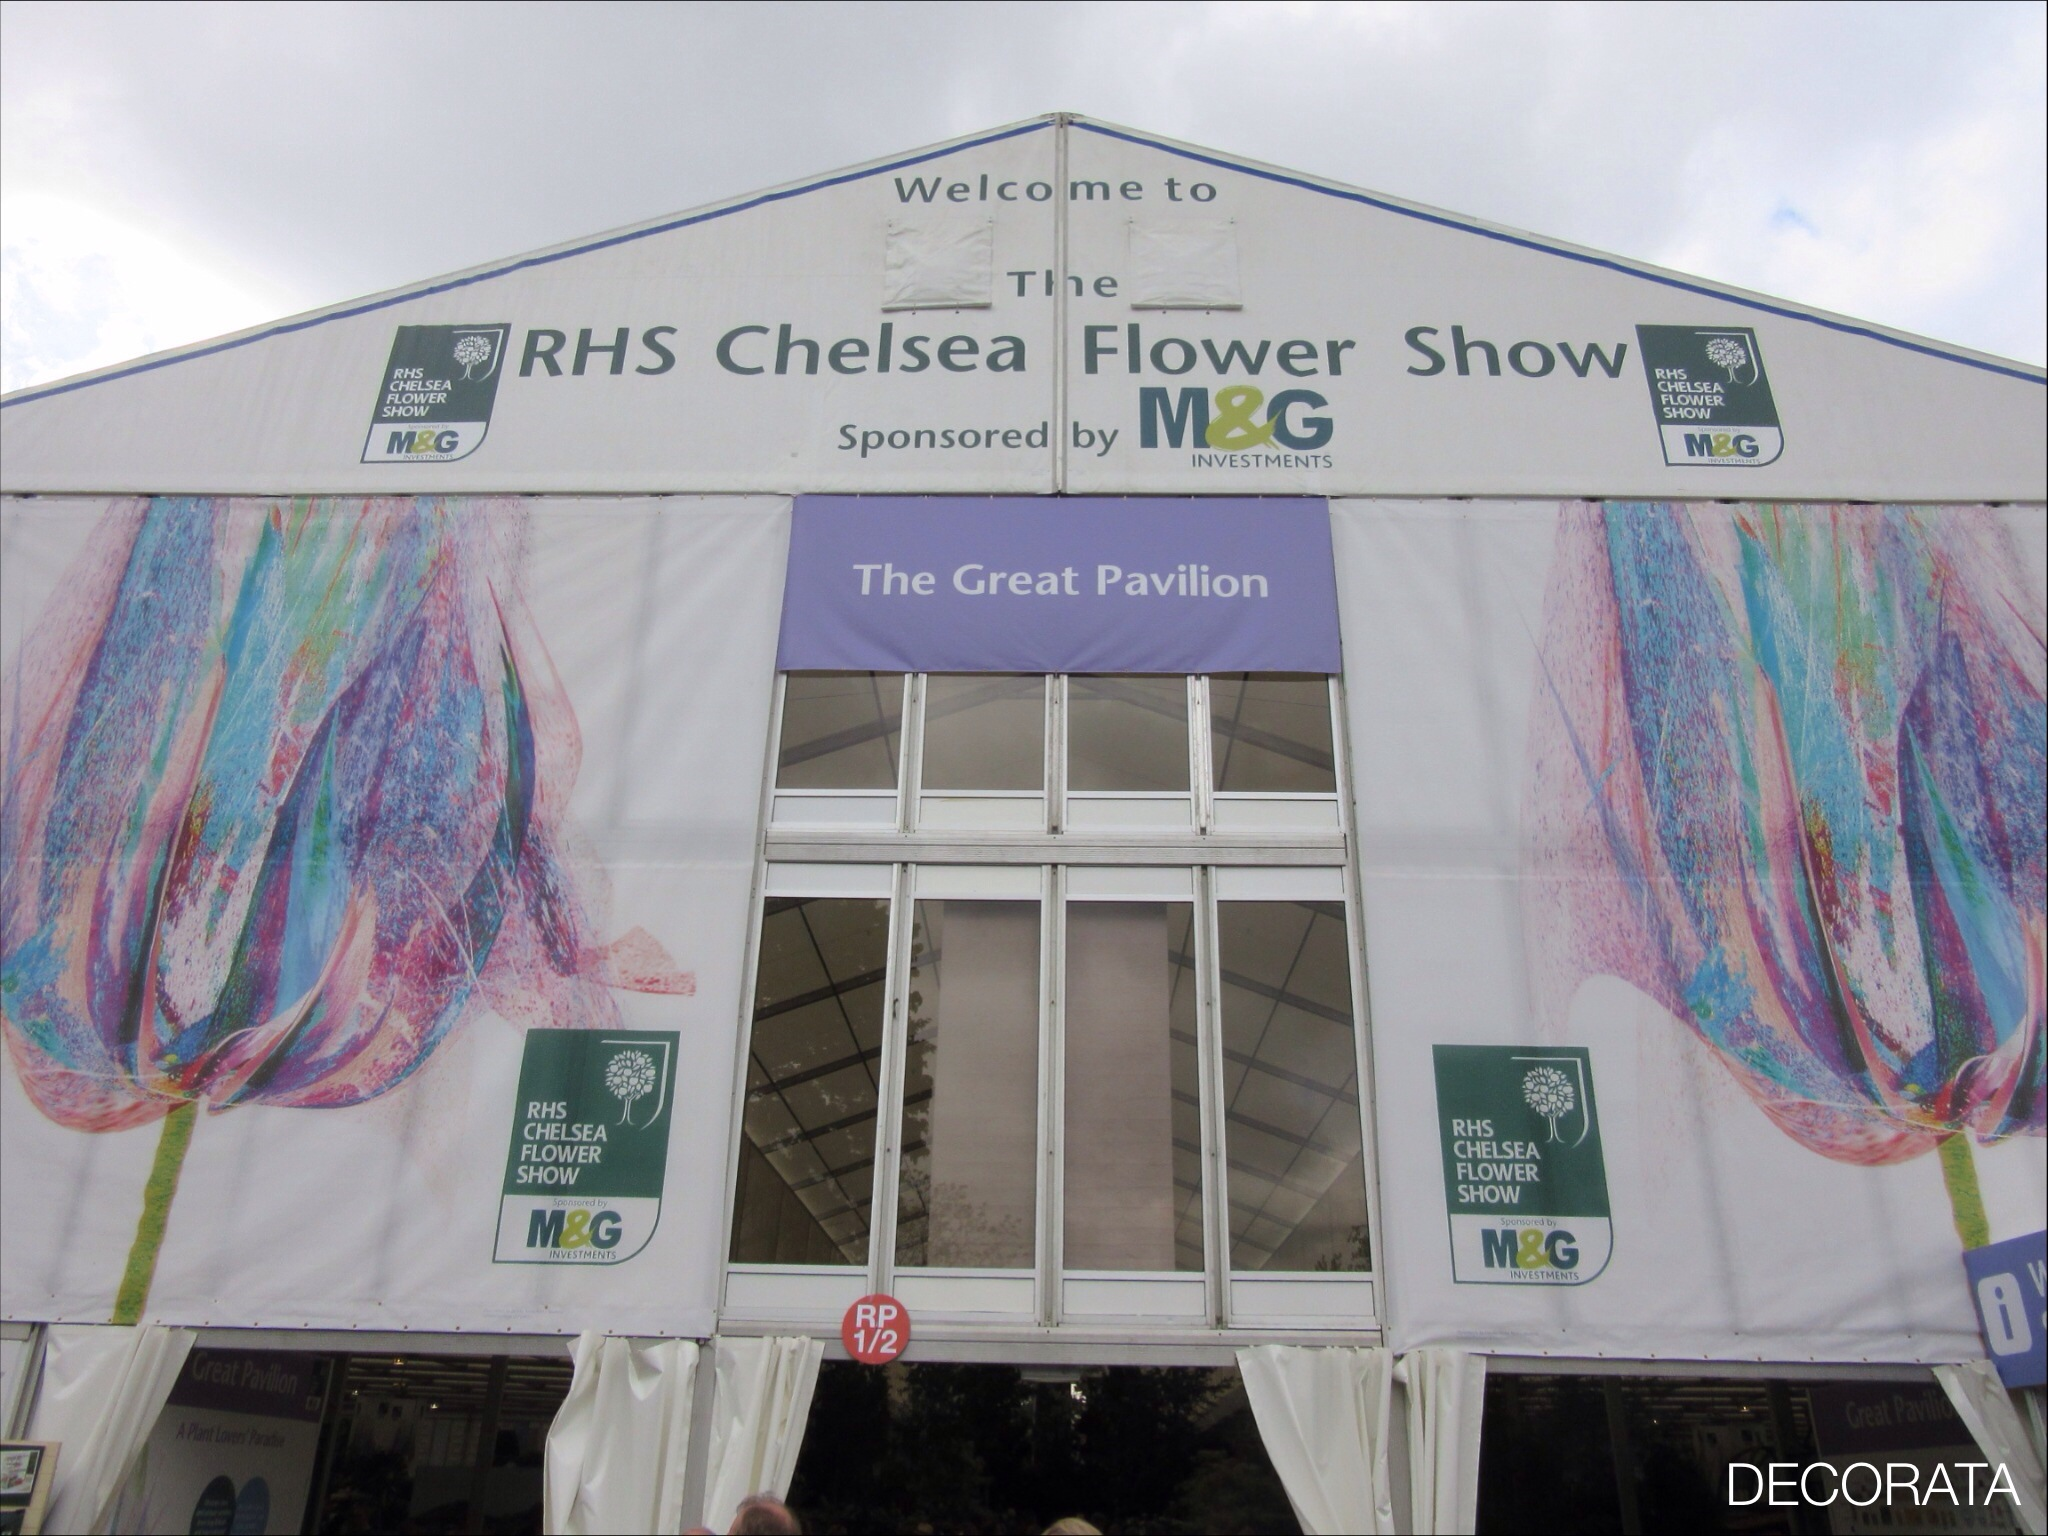 RHS Chelsea Flower Show, Great Pavillion, Decorata Design, sue womersley